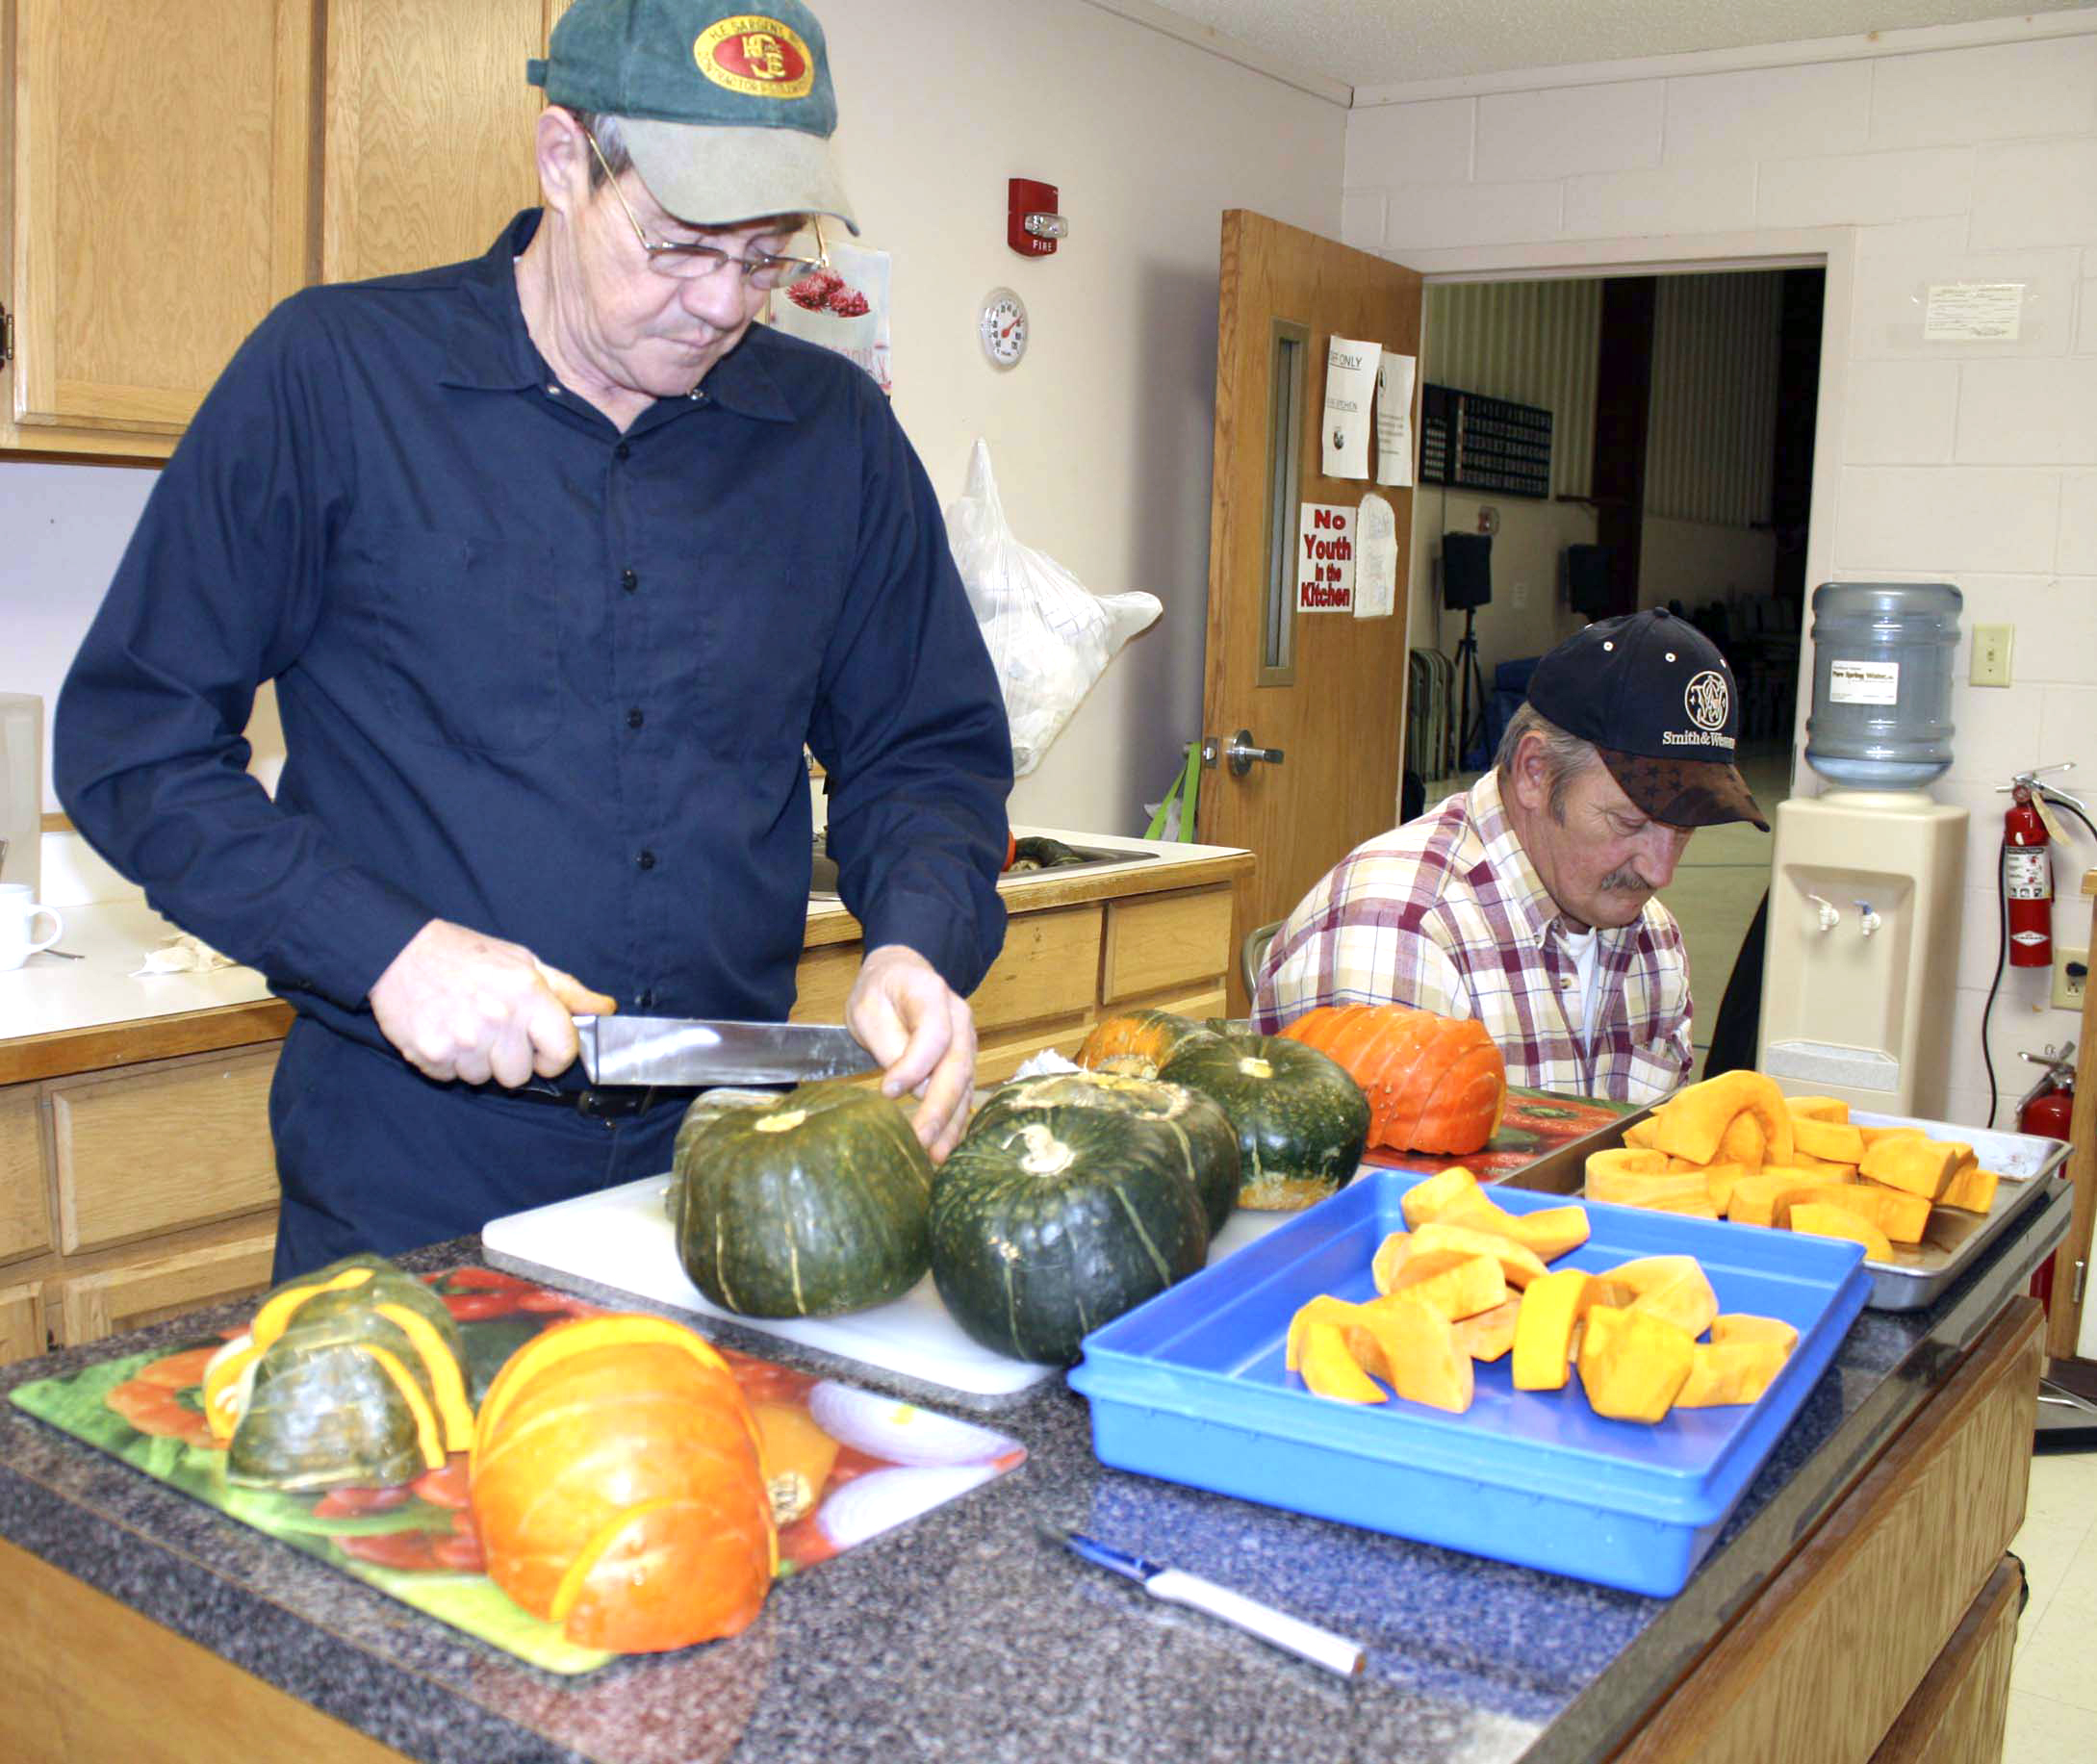 Dale Flewelling (left) and Eugene Stewart cut, peel, seed and prepare winter squash for commercial sale to support Friends of Aroostook's nonprofit free fresh produce programs.